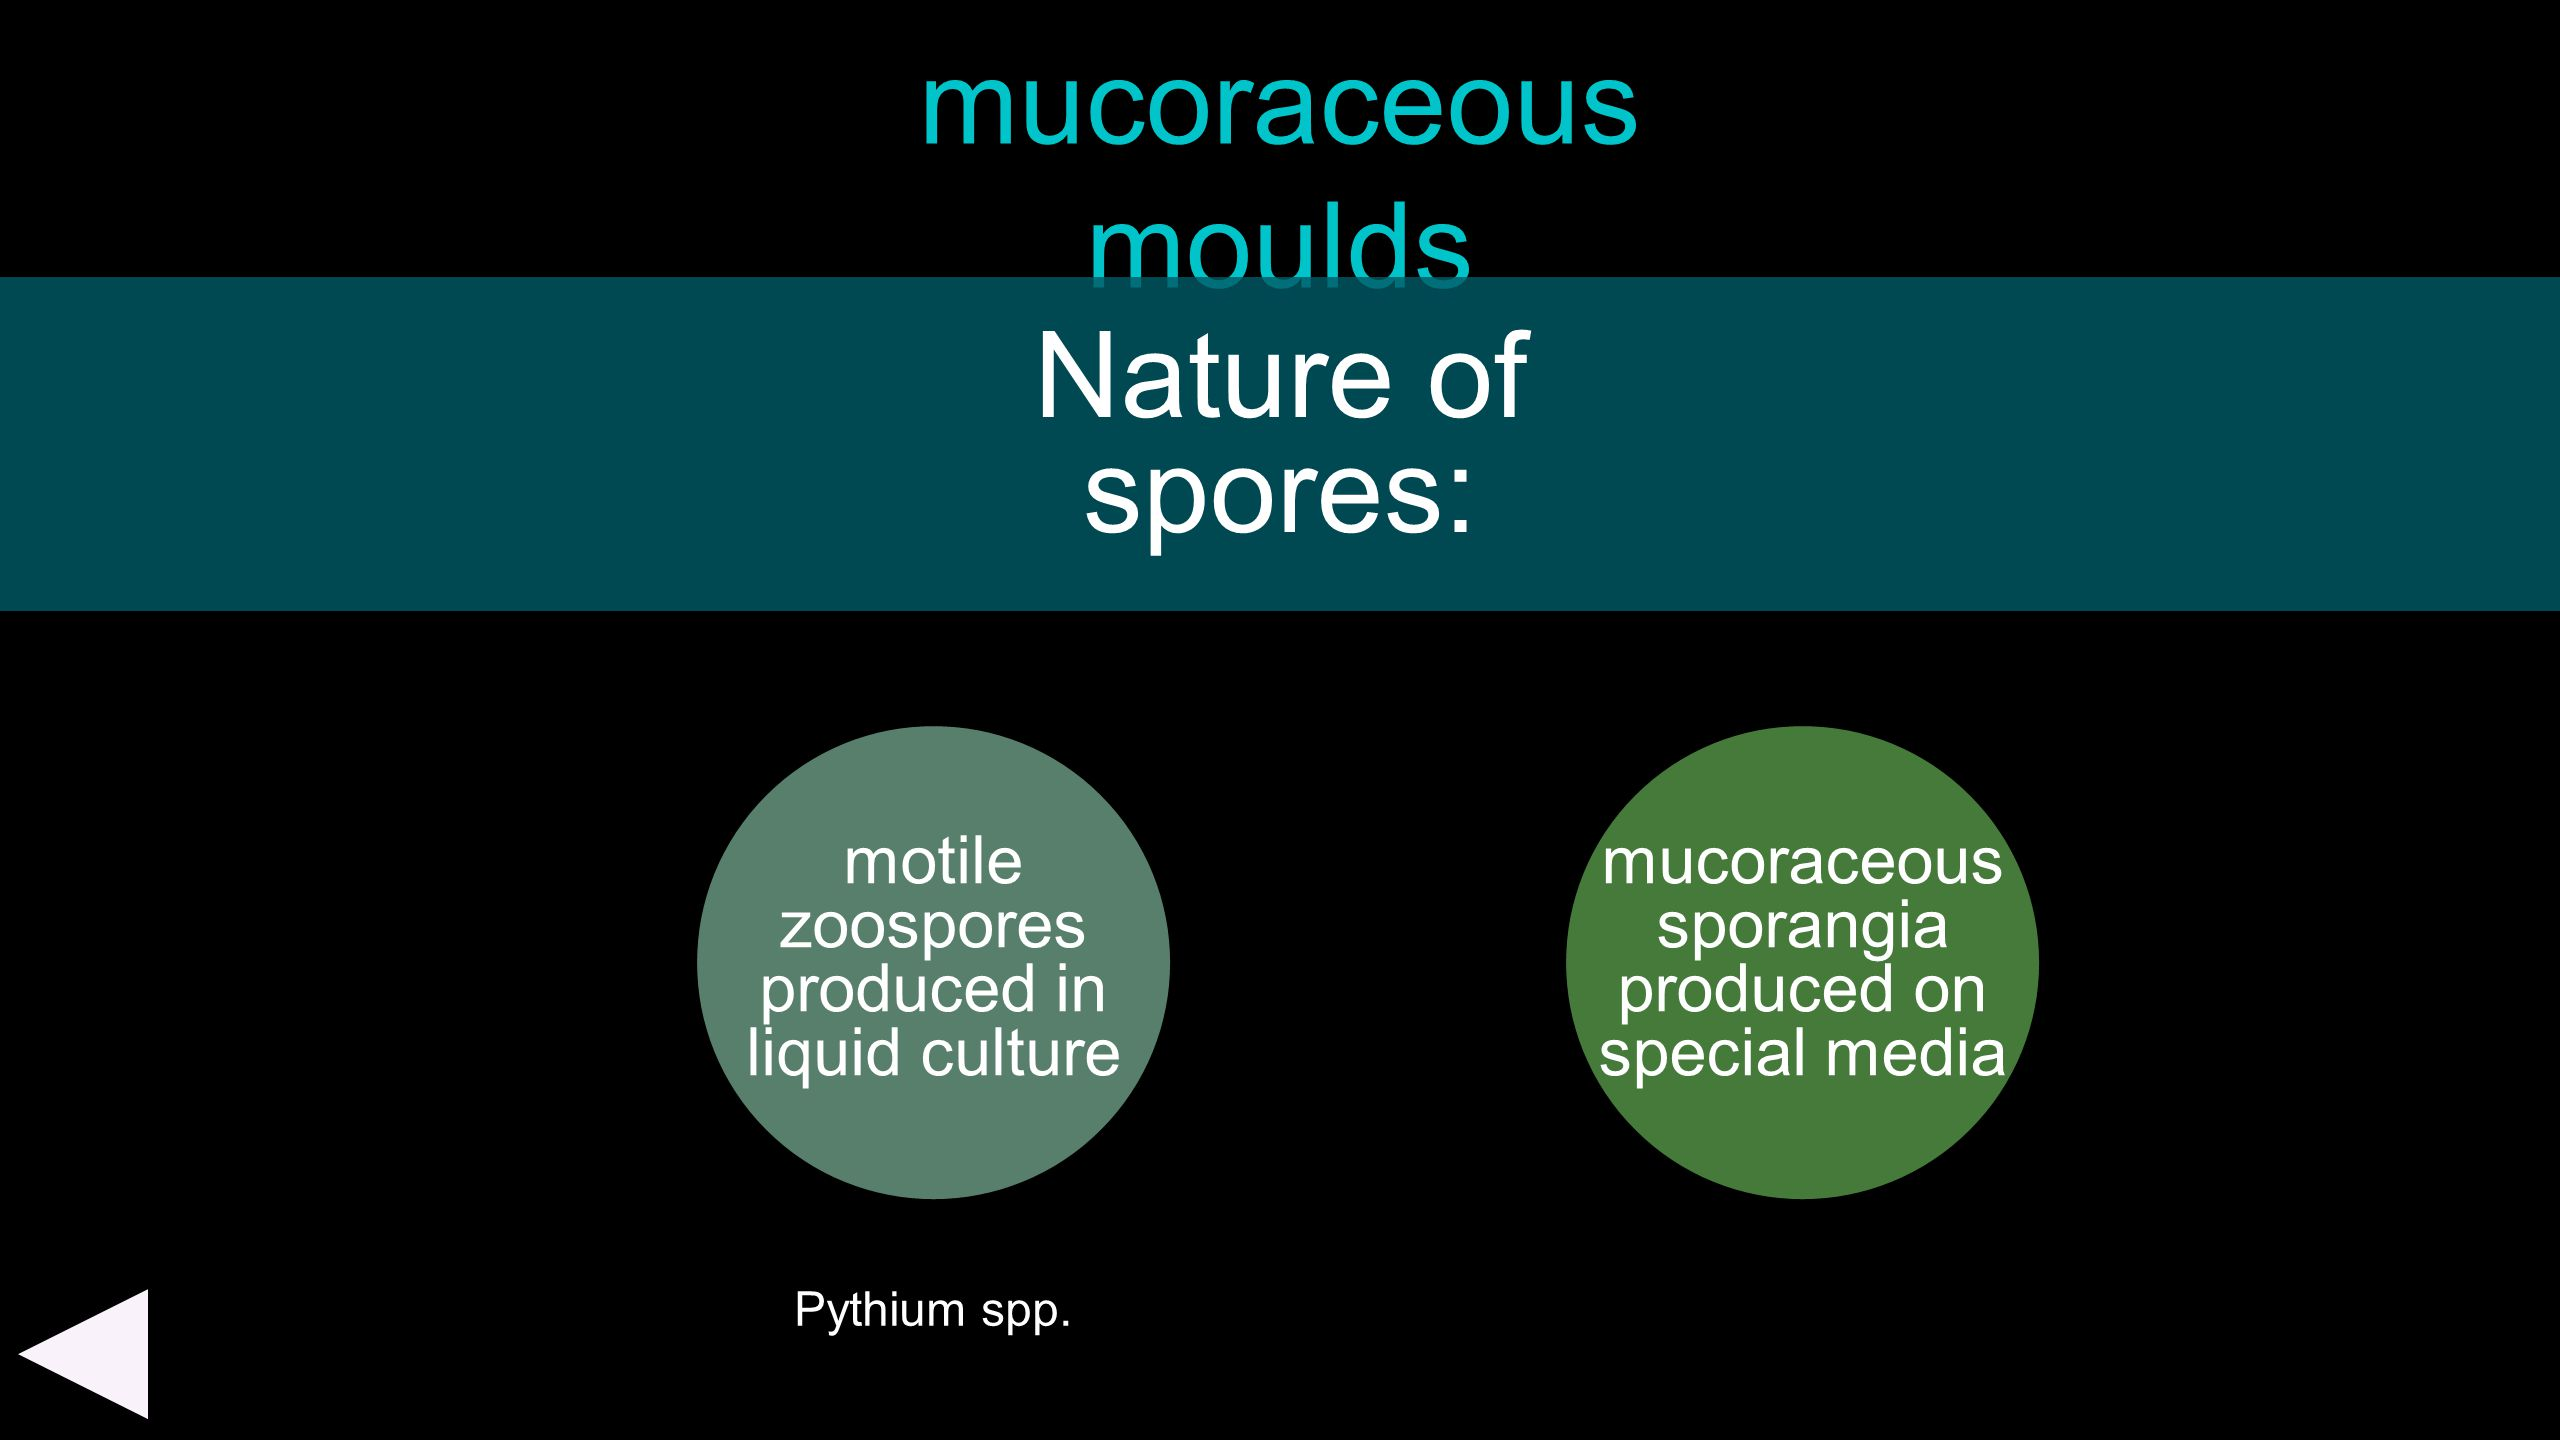 mucoraceous moulds motile zoospores produced in liquid culture Nature of spores: mucoraceous sporangia produced on special media Pythium spp.